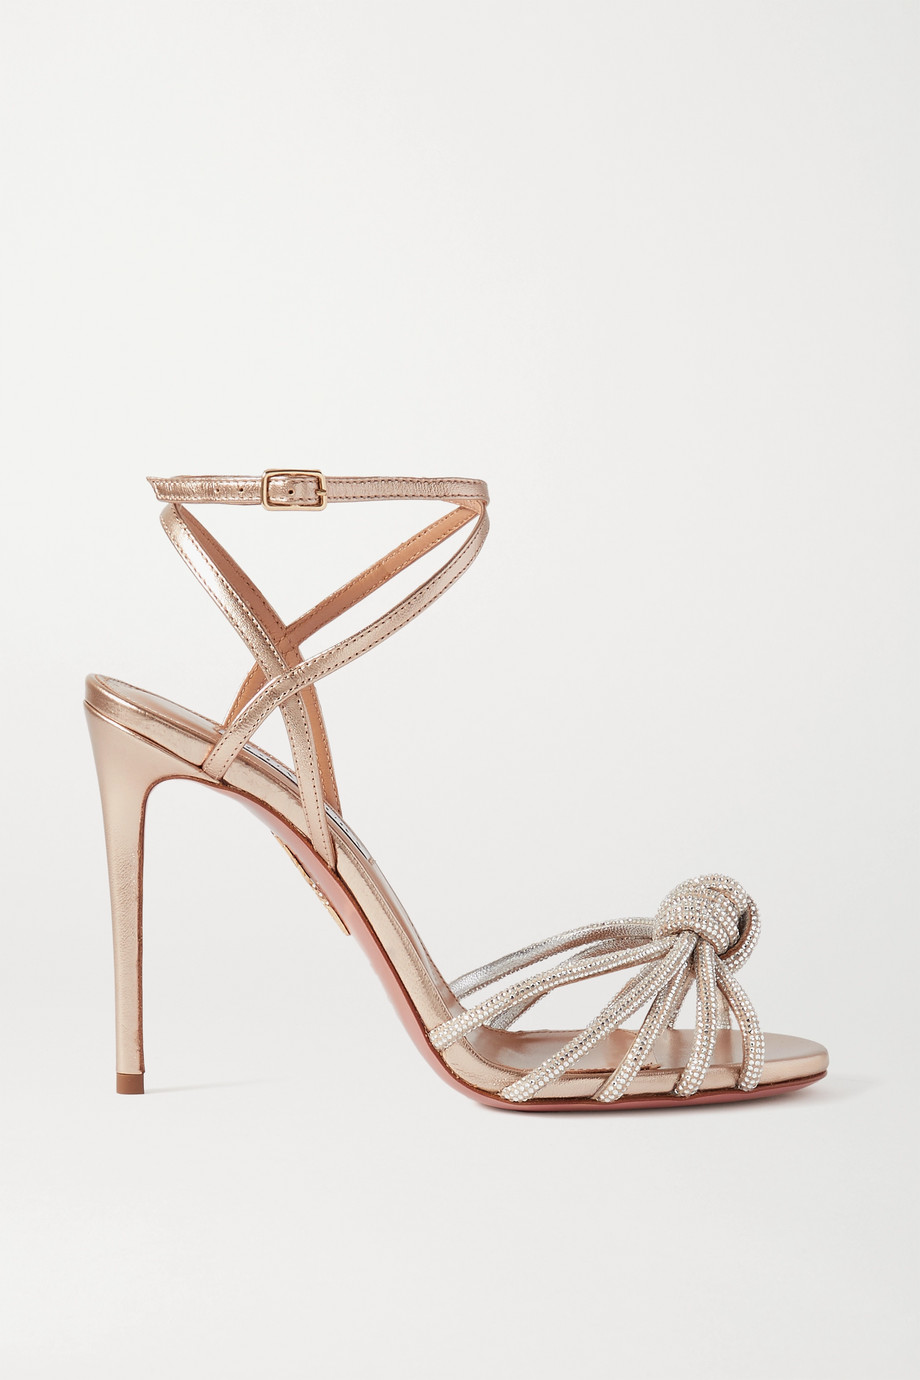 Aquazzura Celeste 105 crystal-embellished leather sandals